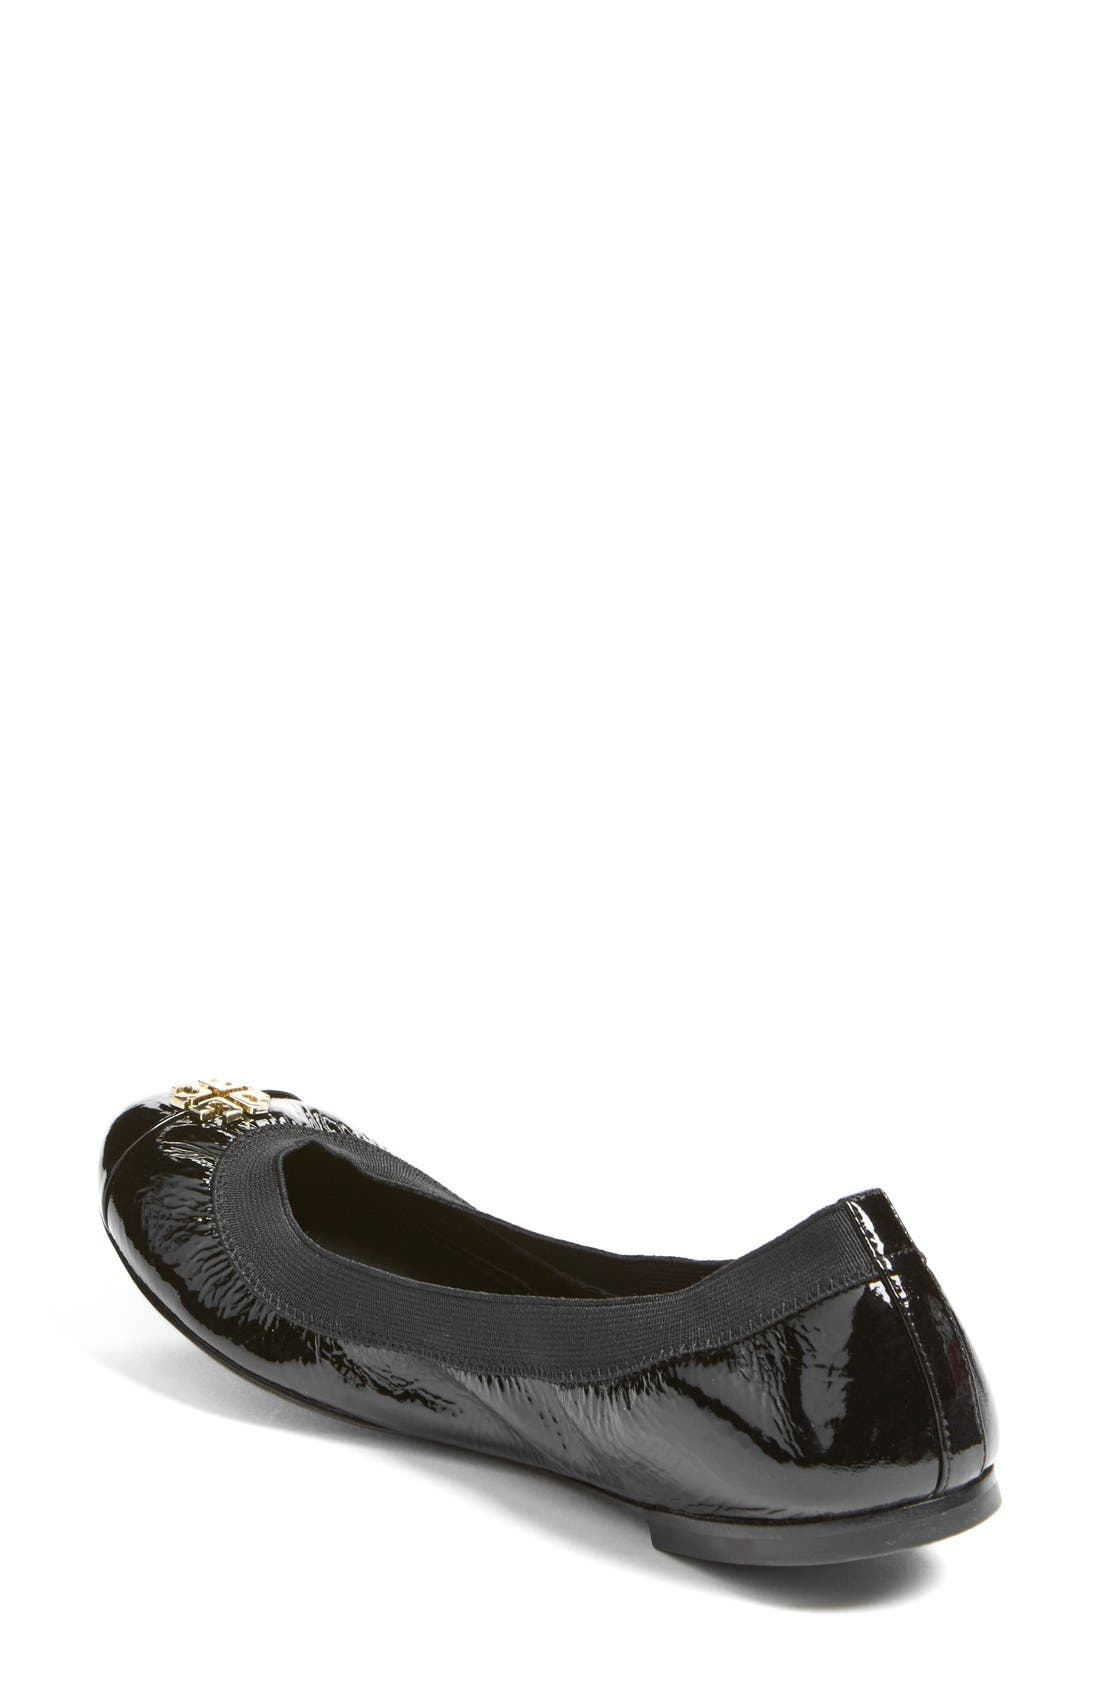 Alternate Image 2  - Tory Burch 'Jolie' Ballet Flat (Women)